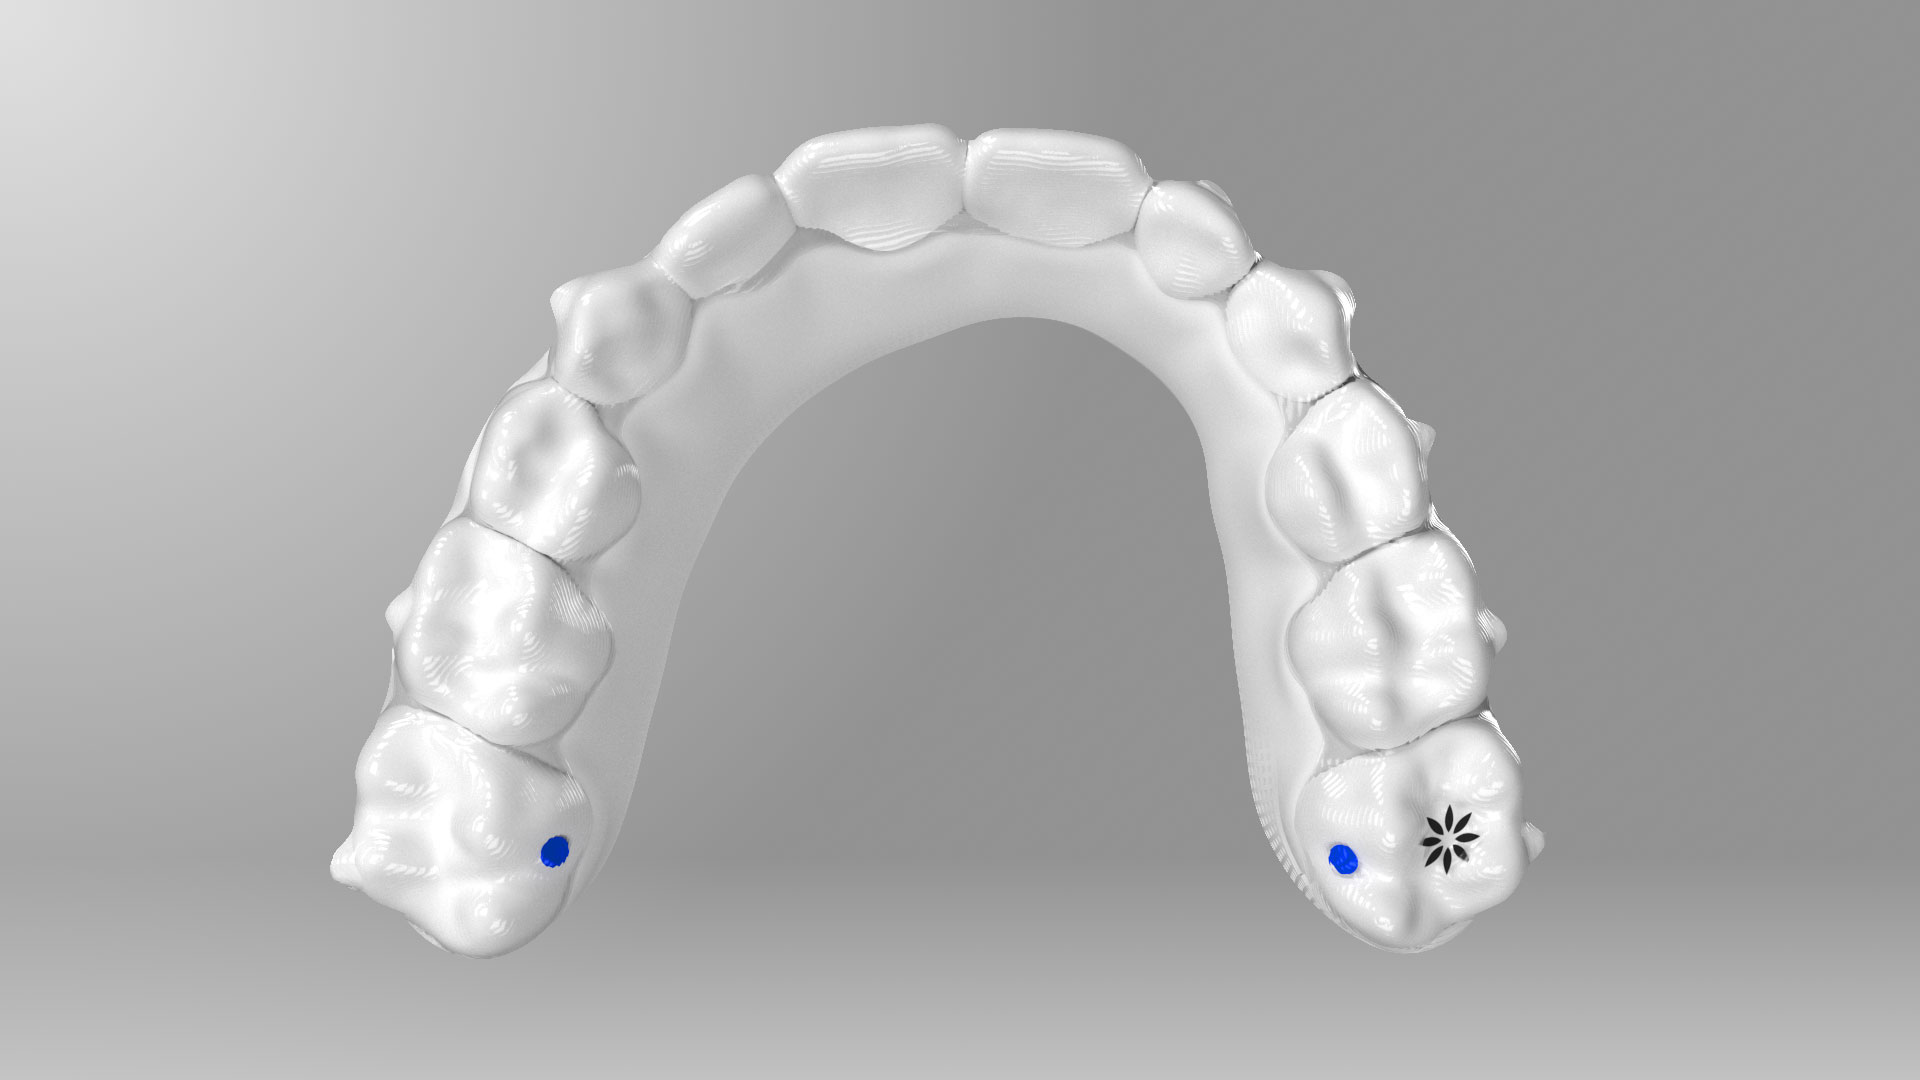 Arch expand of Invisalign teeth